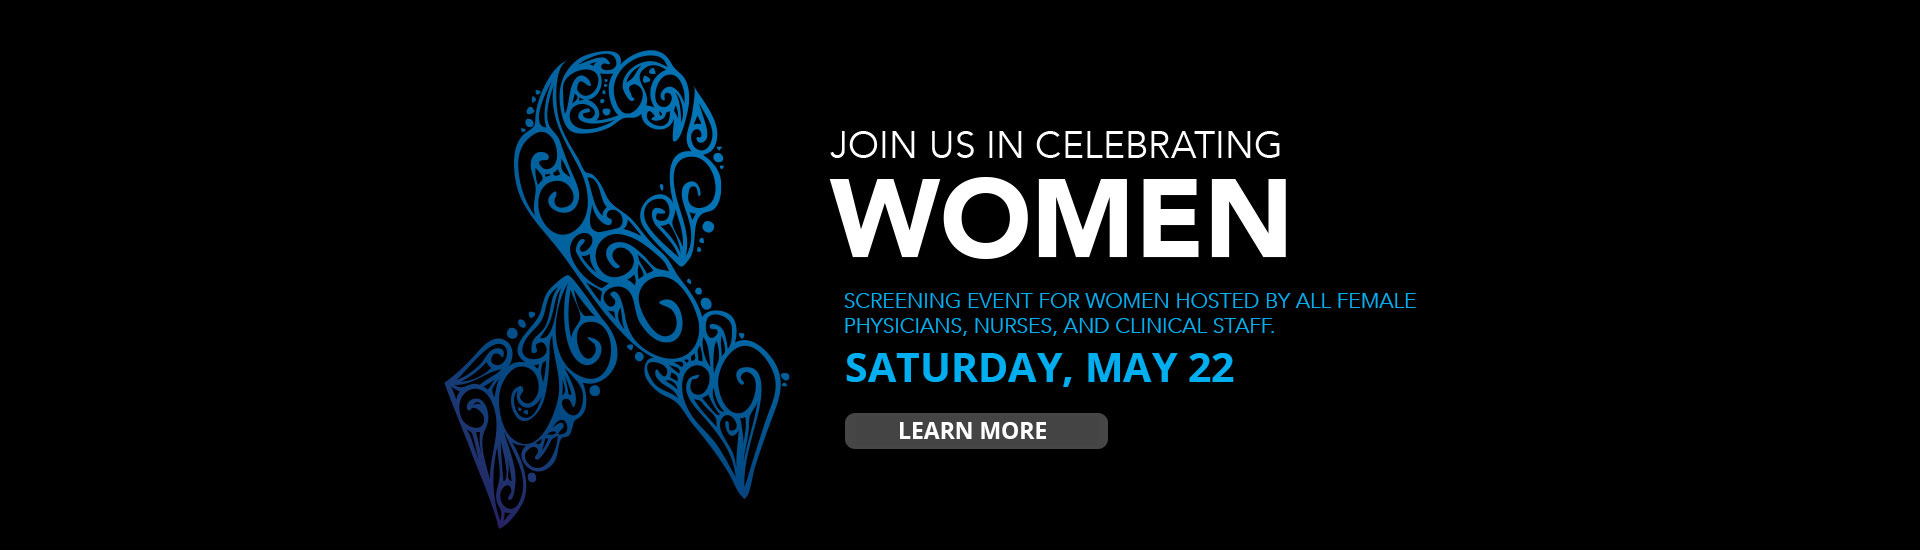 Screening Event for Women Hosted by All Female Clinical Staff on May 22